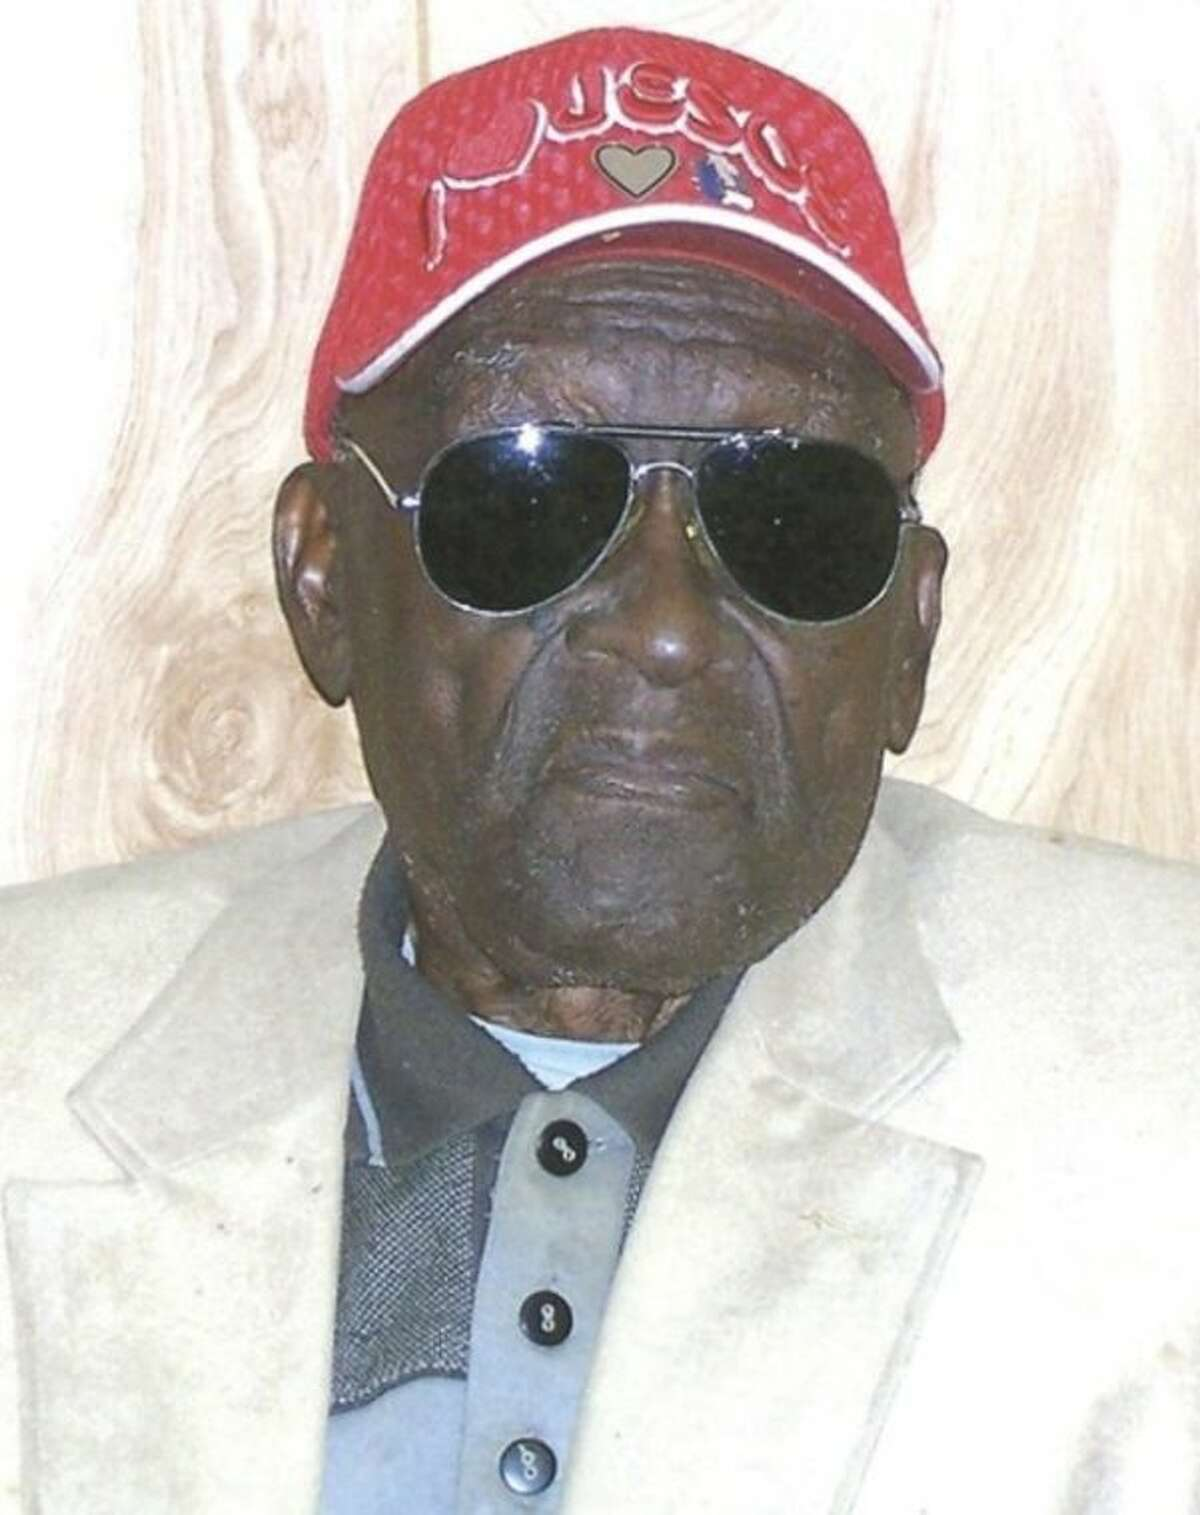 In this 2011 photo provided by the Pine Bluff Commercial, Monroe Isadore poses for photos on his 105th birthday in Pine Bluff, Ark. Authorities in Arkansas halted a standoff on Saturday, Sept. 7, 2013, when they shot and killed Isadore, 107, who opened fire at them. (AP Photo/Courtesy Pine Bluff Commercial)